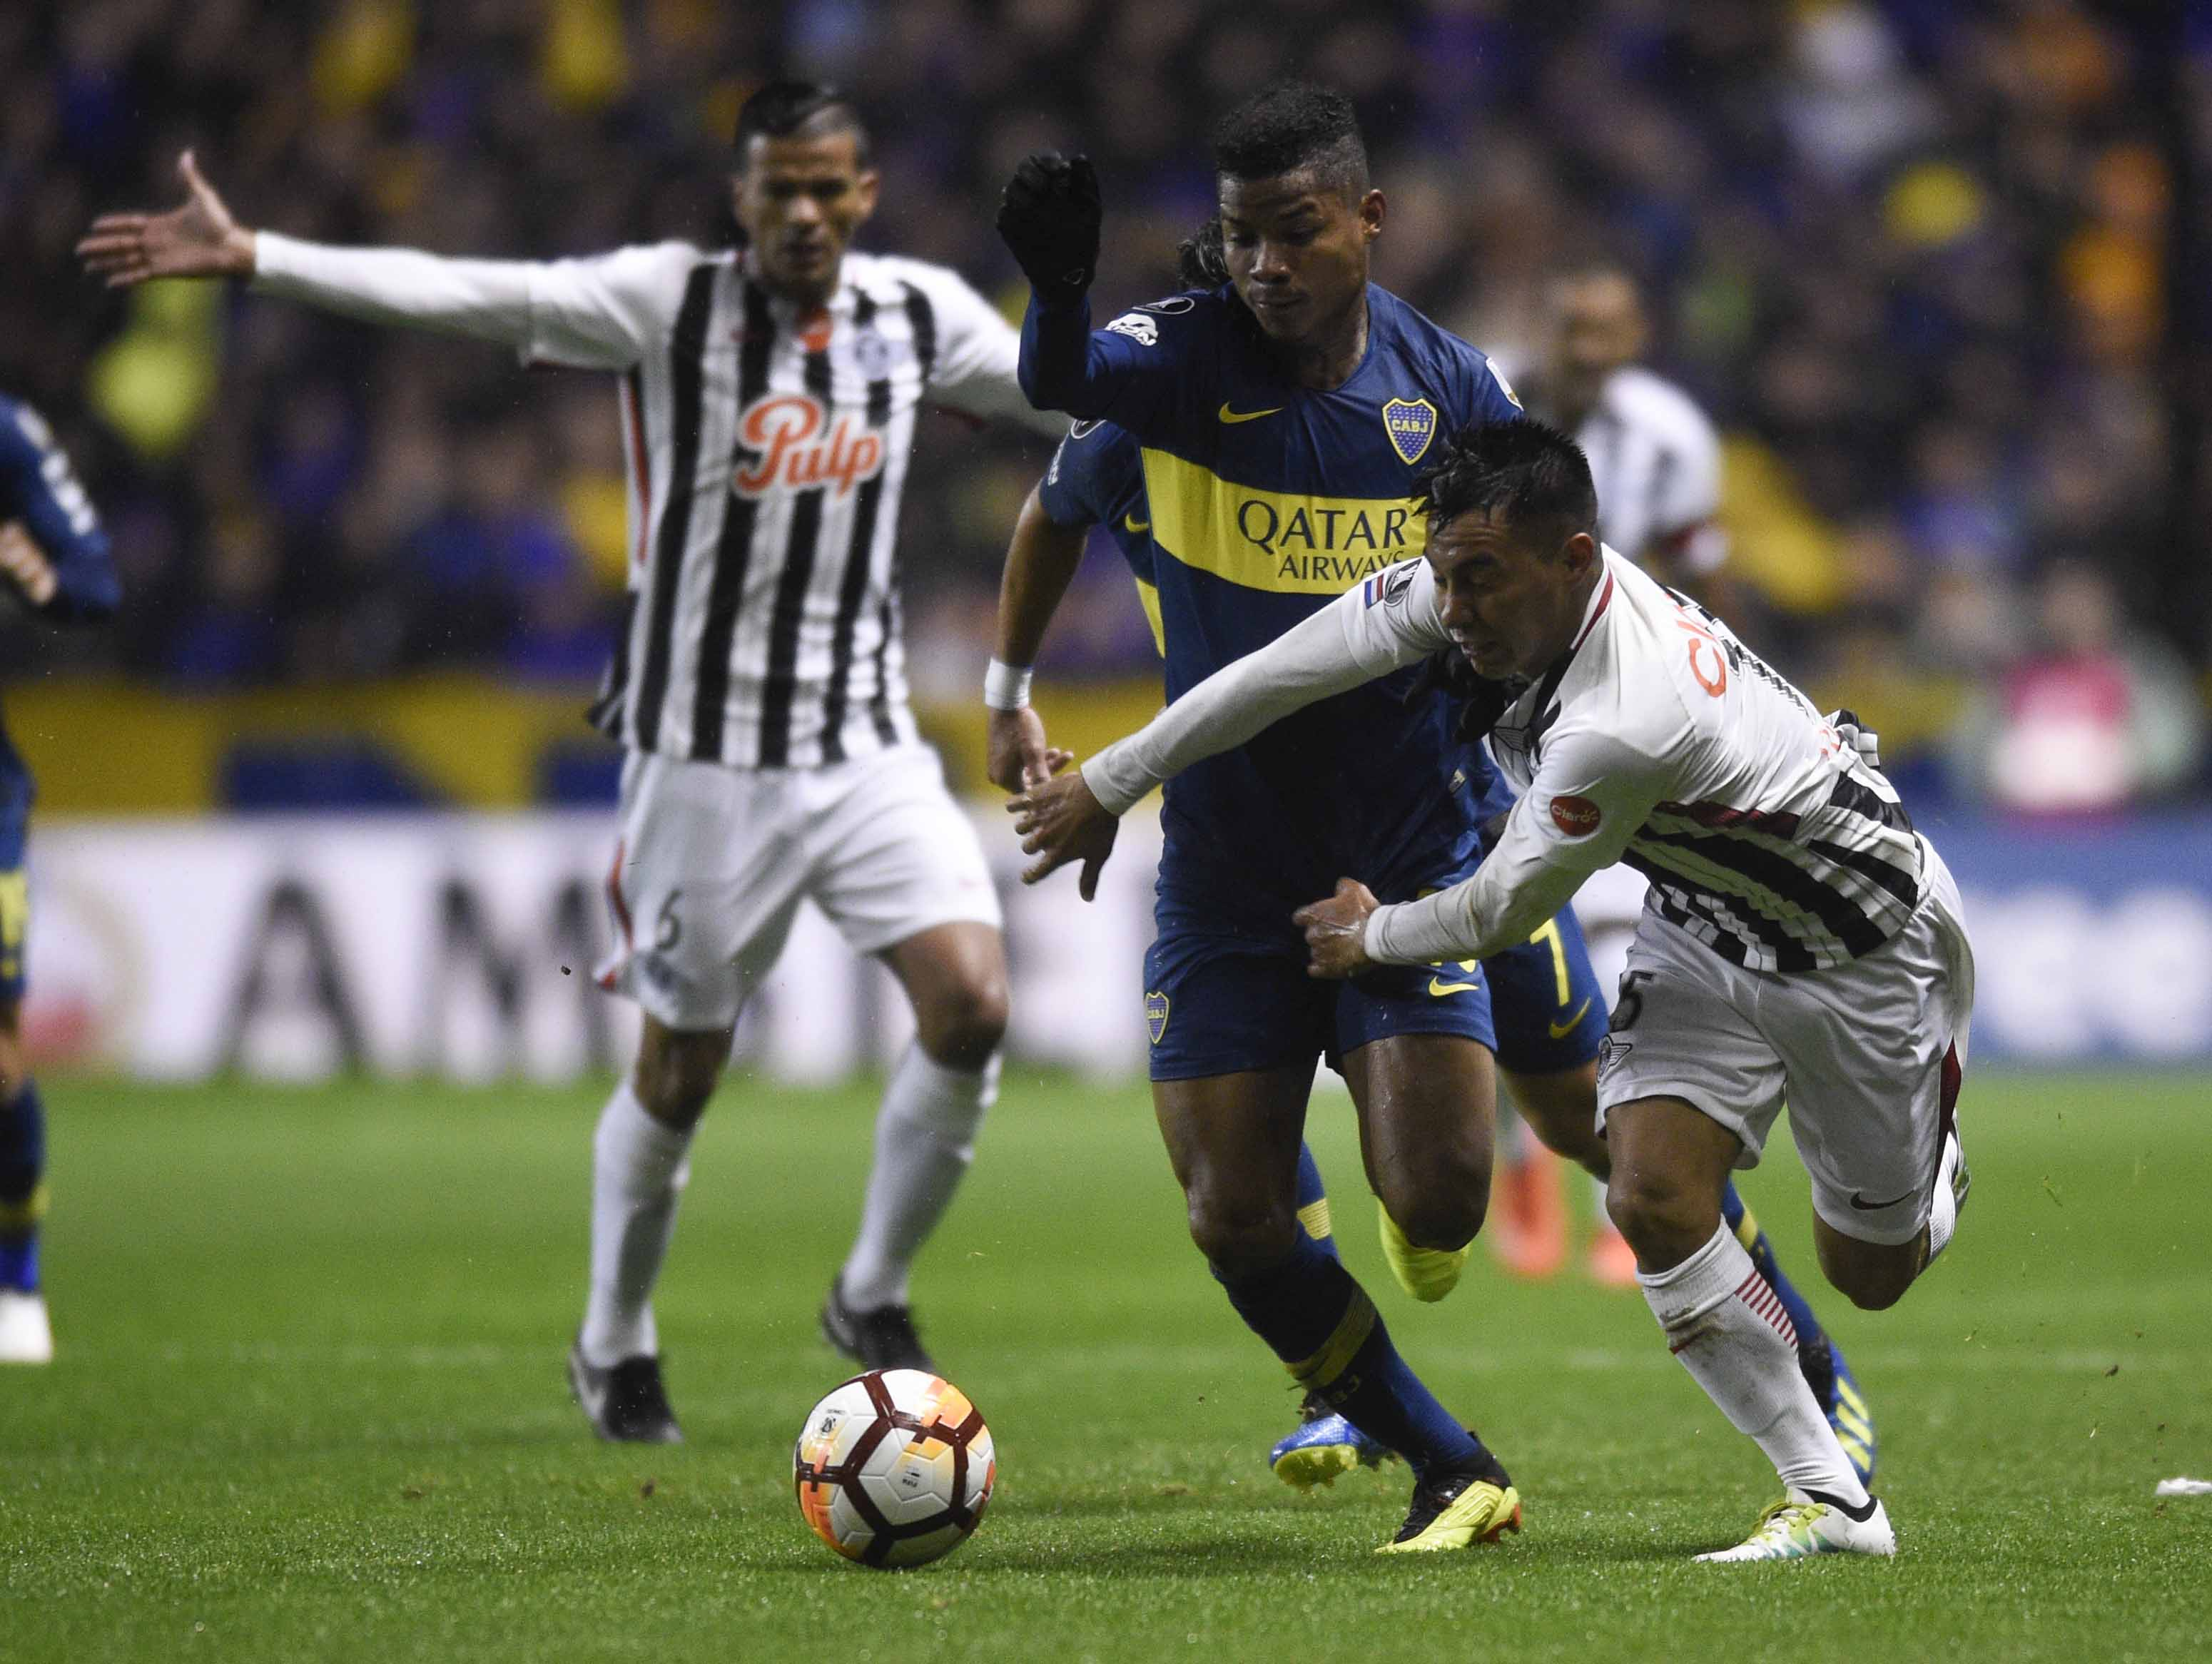 Angel Lucena (right) of Paraguay's Libertad, fights for the ball with Wilmar Barrios (center) of Argentina's Boca Juniors, during a Copa Libertadores soccer match in Buenos Aires, Argentina on Wednesday.